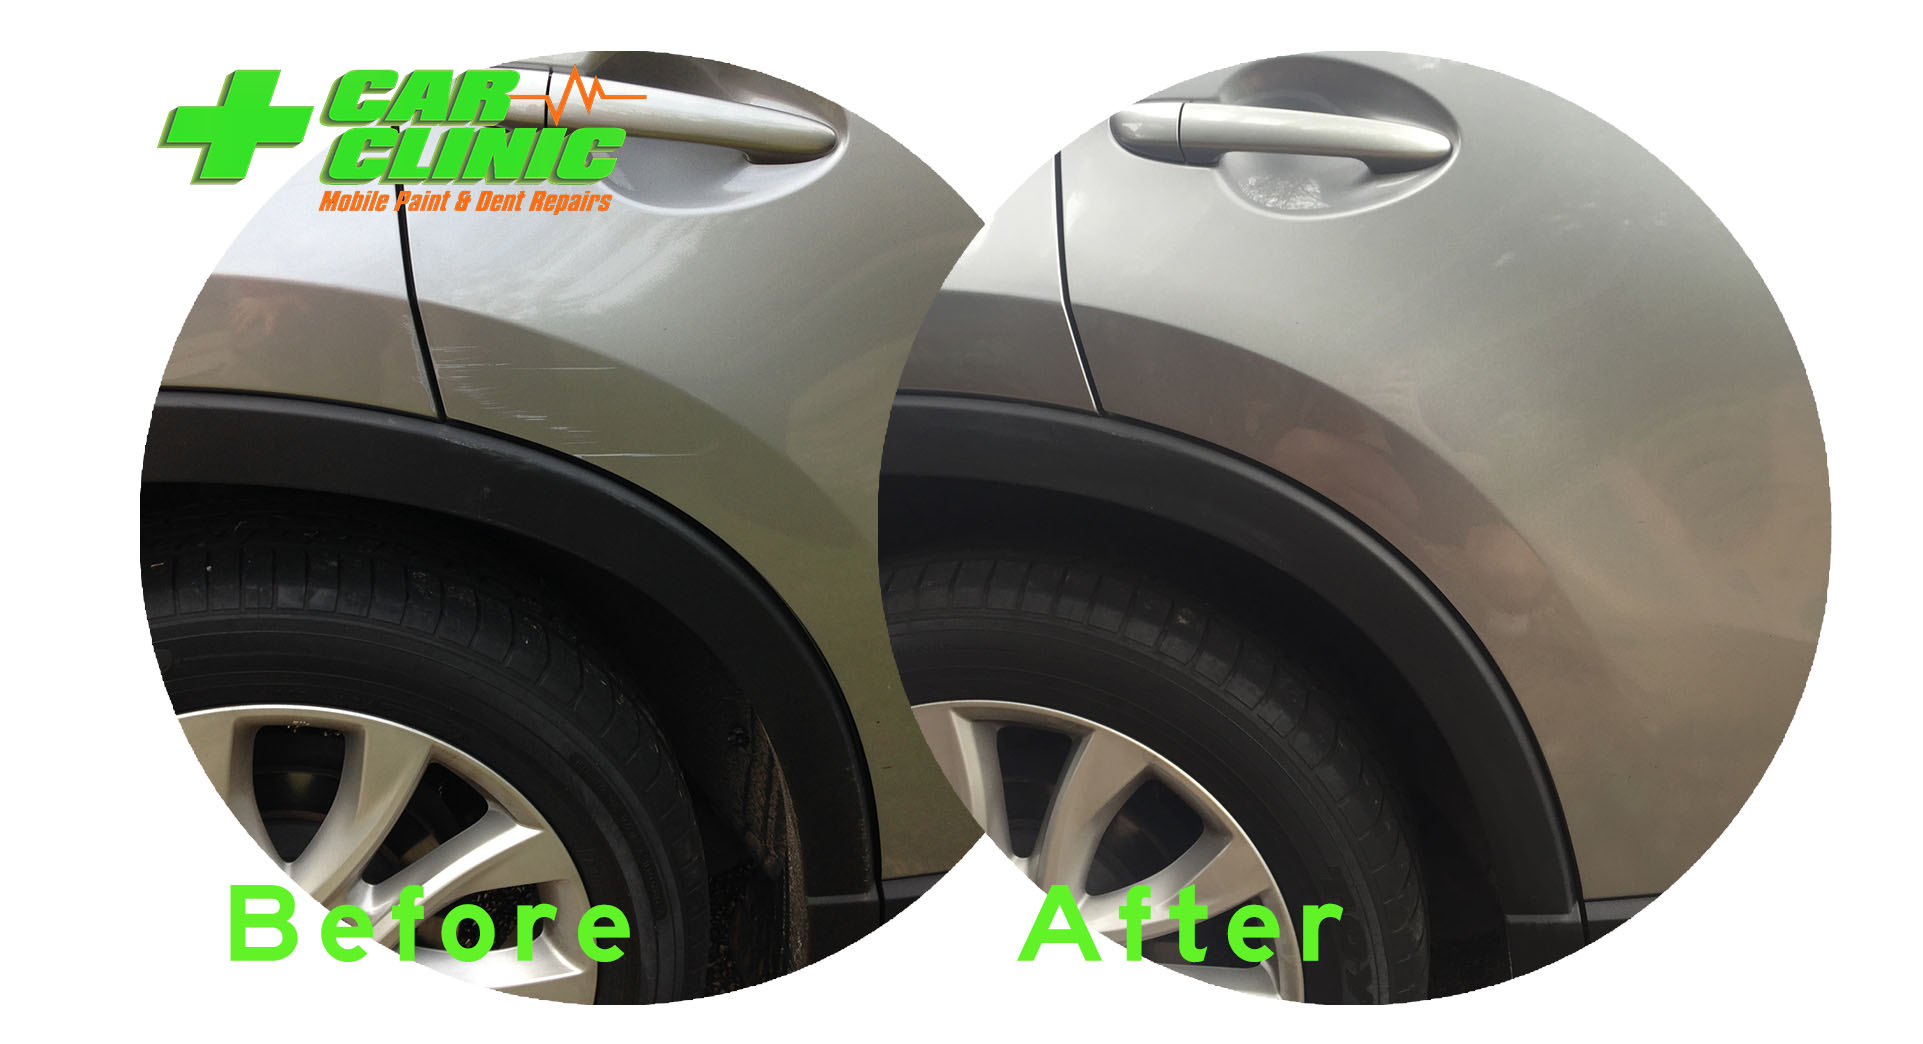 Mobile Paint & Dent Repairs - Brisbane - Before After Image o1